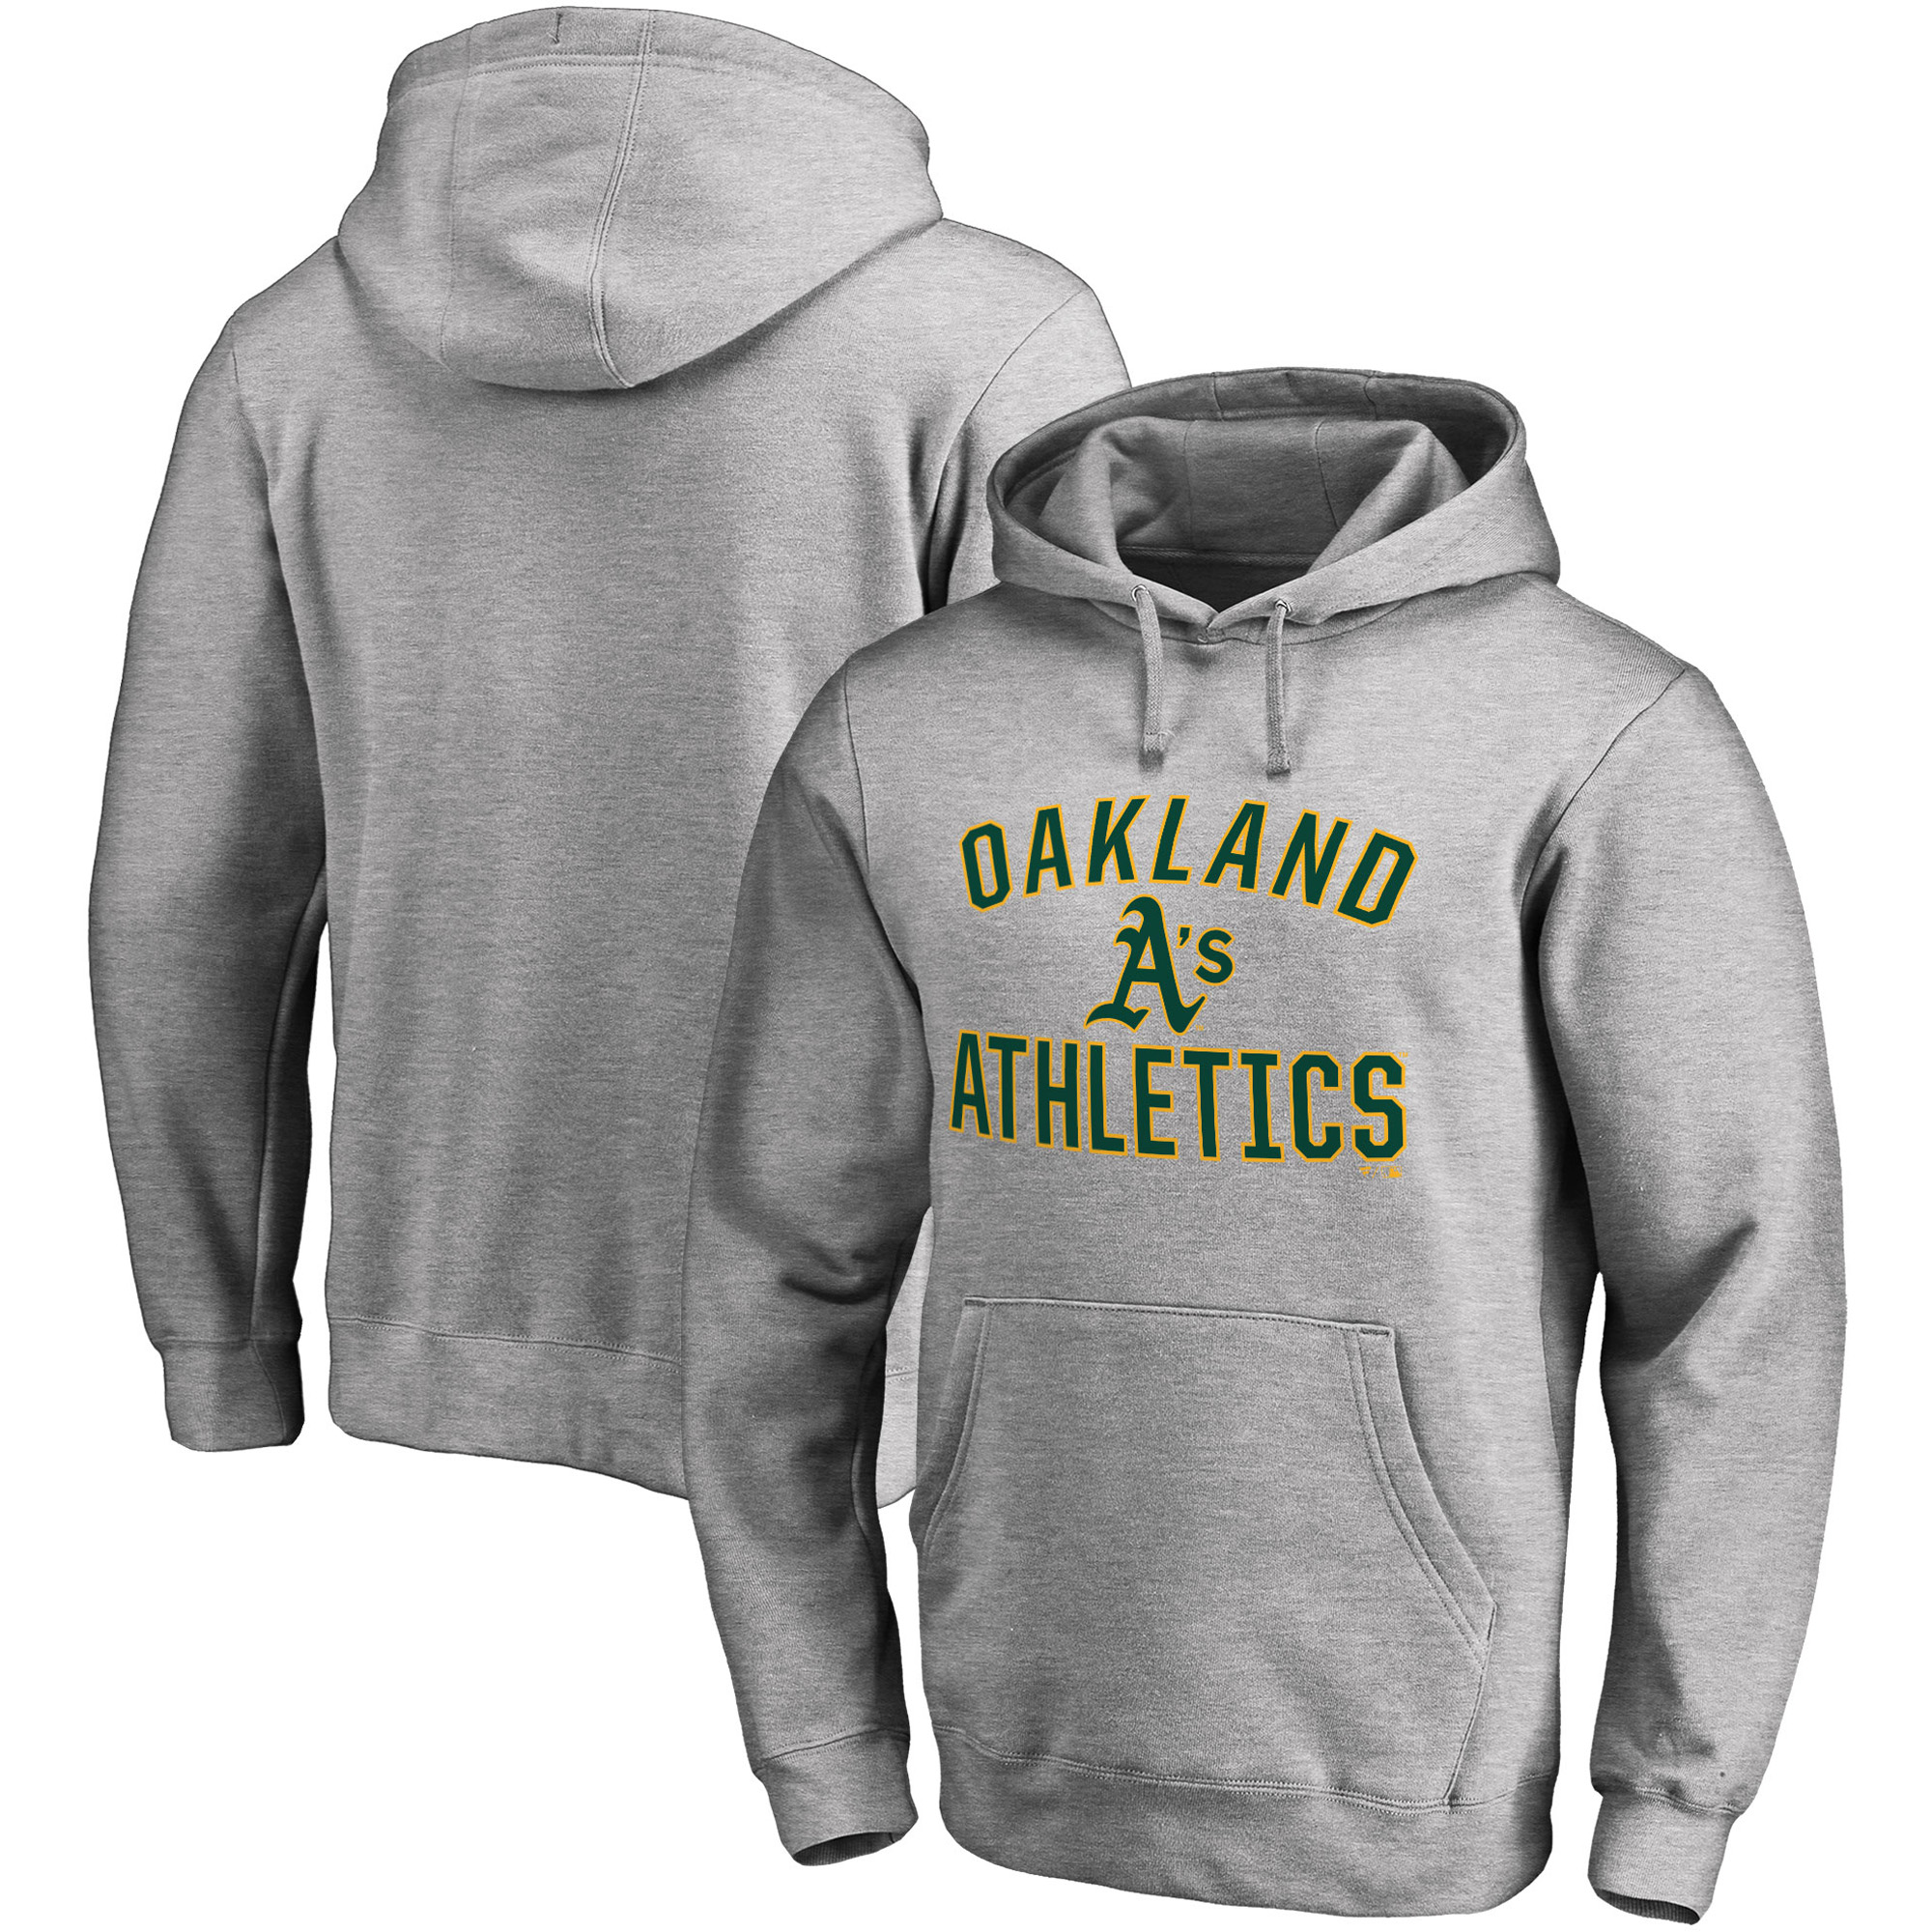 Oakland Athletics Fanatics Branded Victory Arch Pullover Hoodie - Heathered Gray